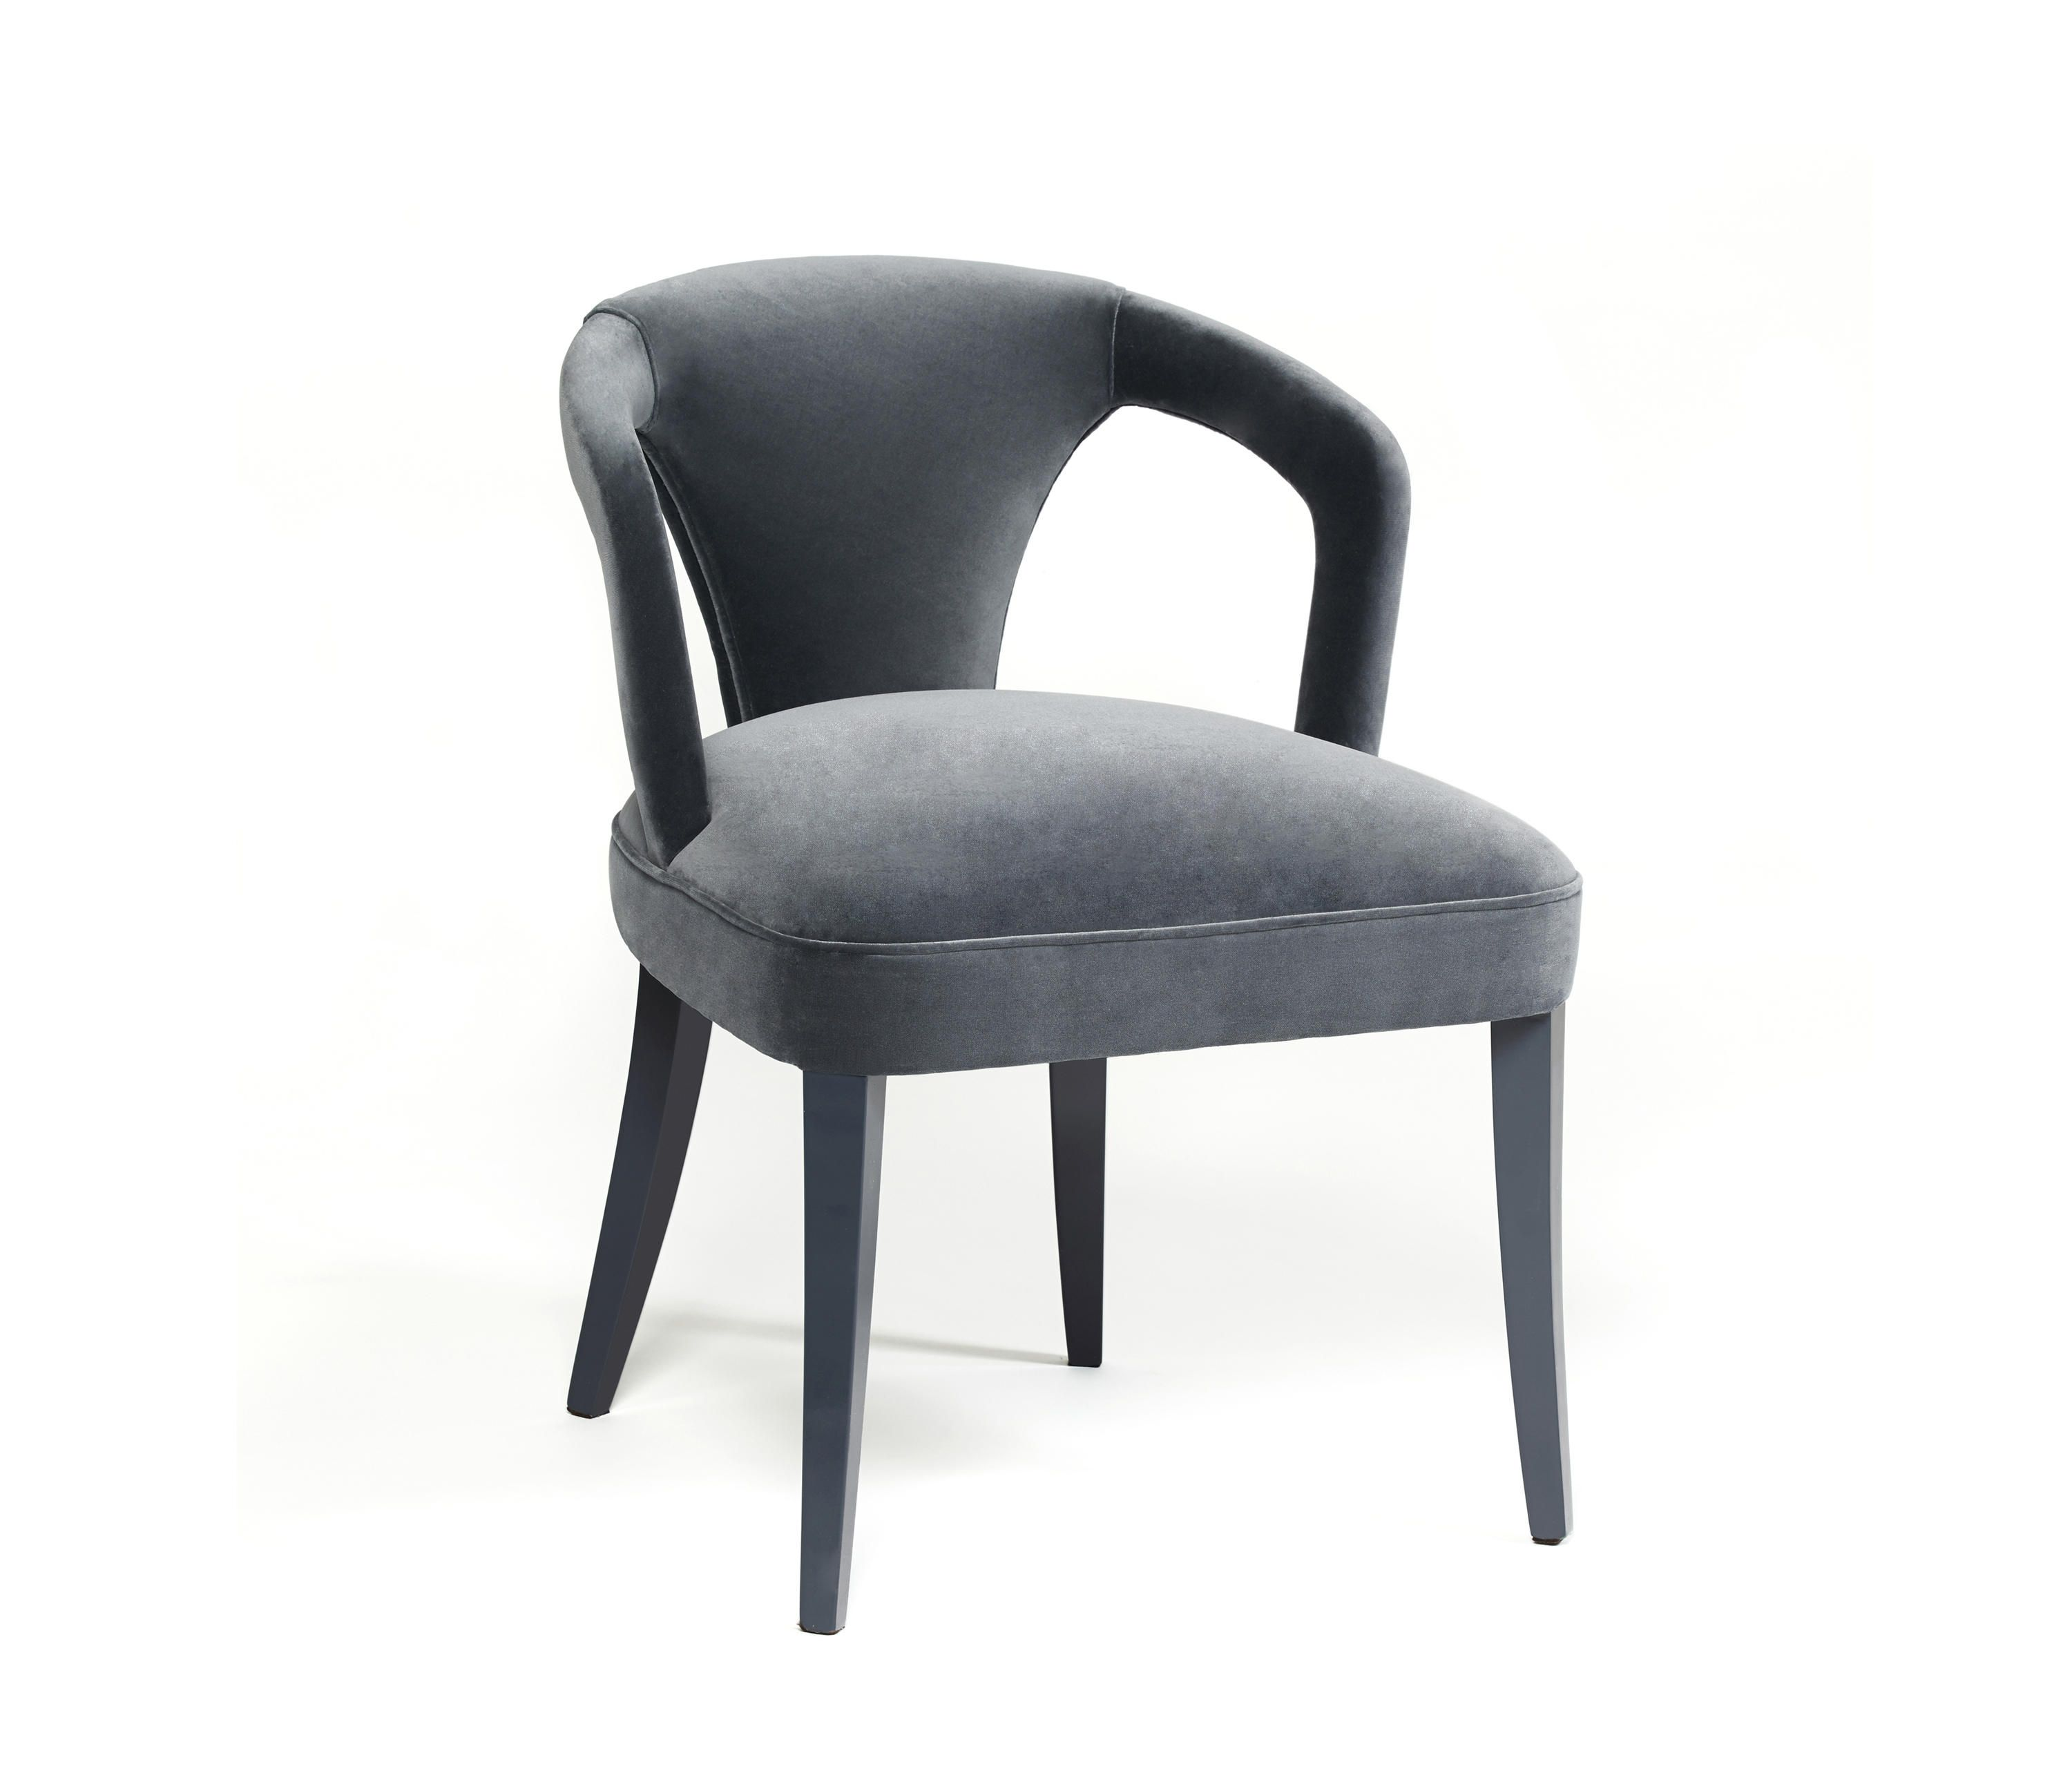 MARY Q | CHAIR - designer Restaurant chairs from MUNNA  all information   high-